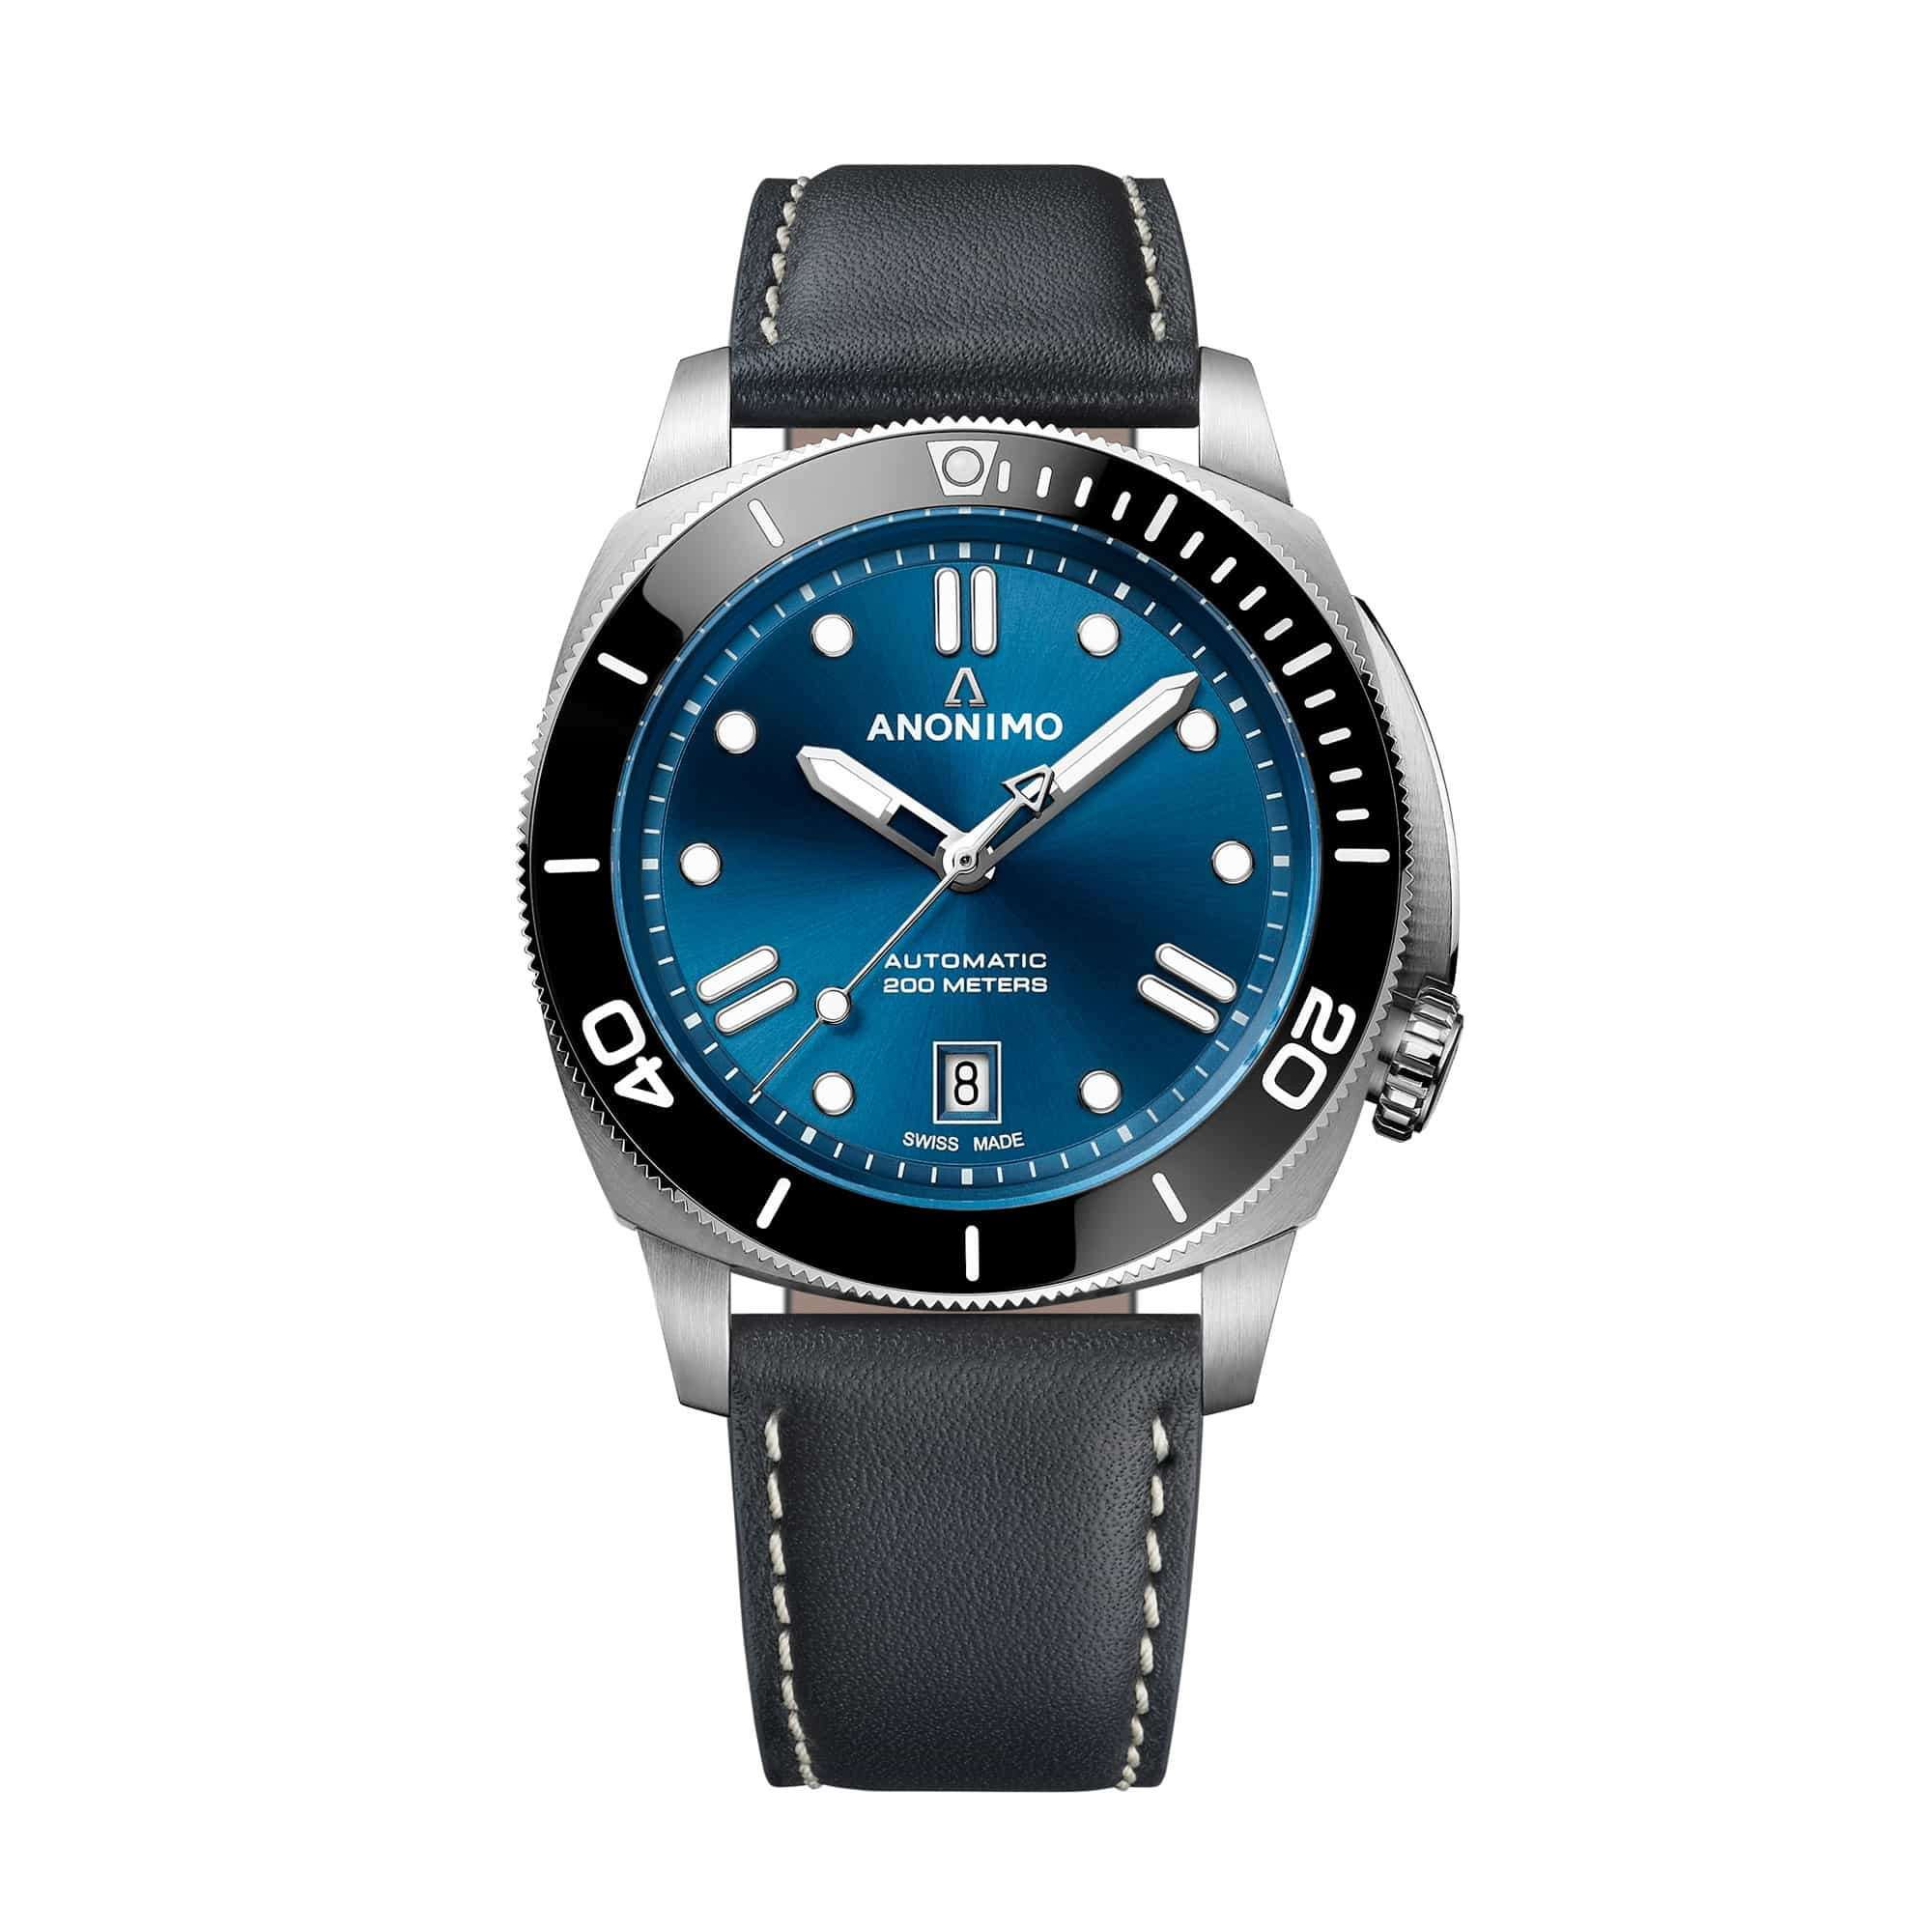 Anonimo Nautilo 42 mm Blue Dial AM-5009.09.103.A01 – Swiss Time